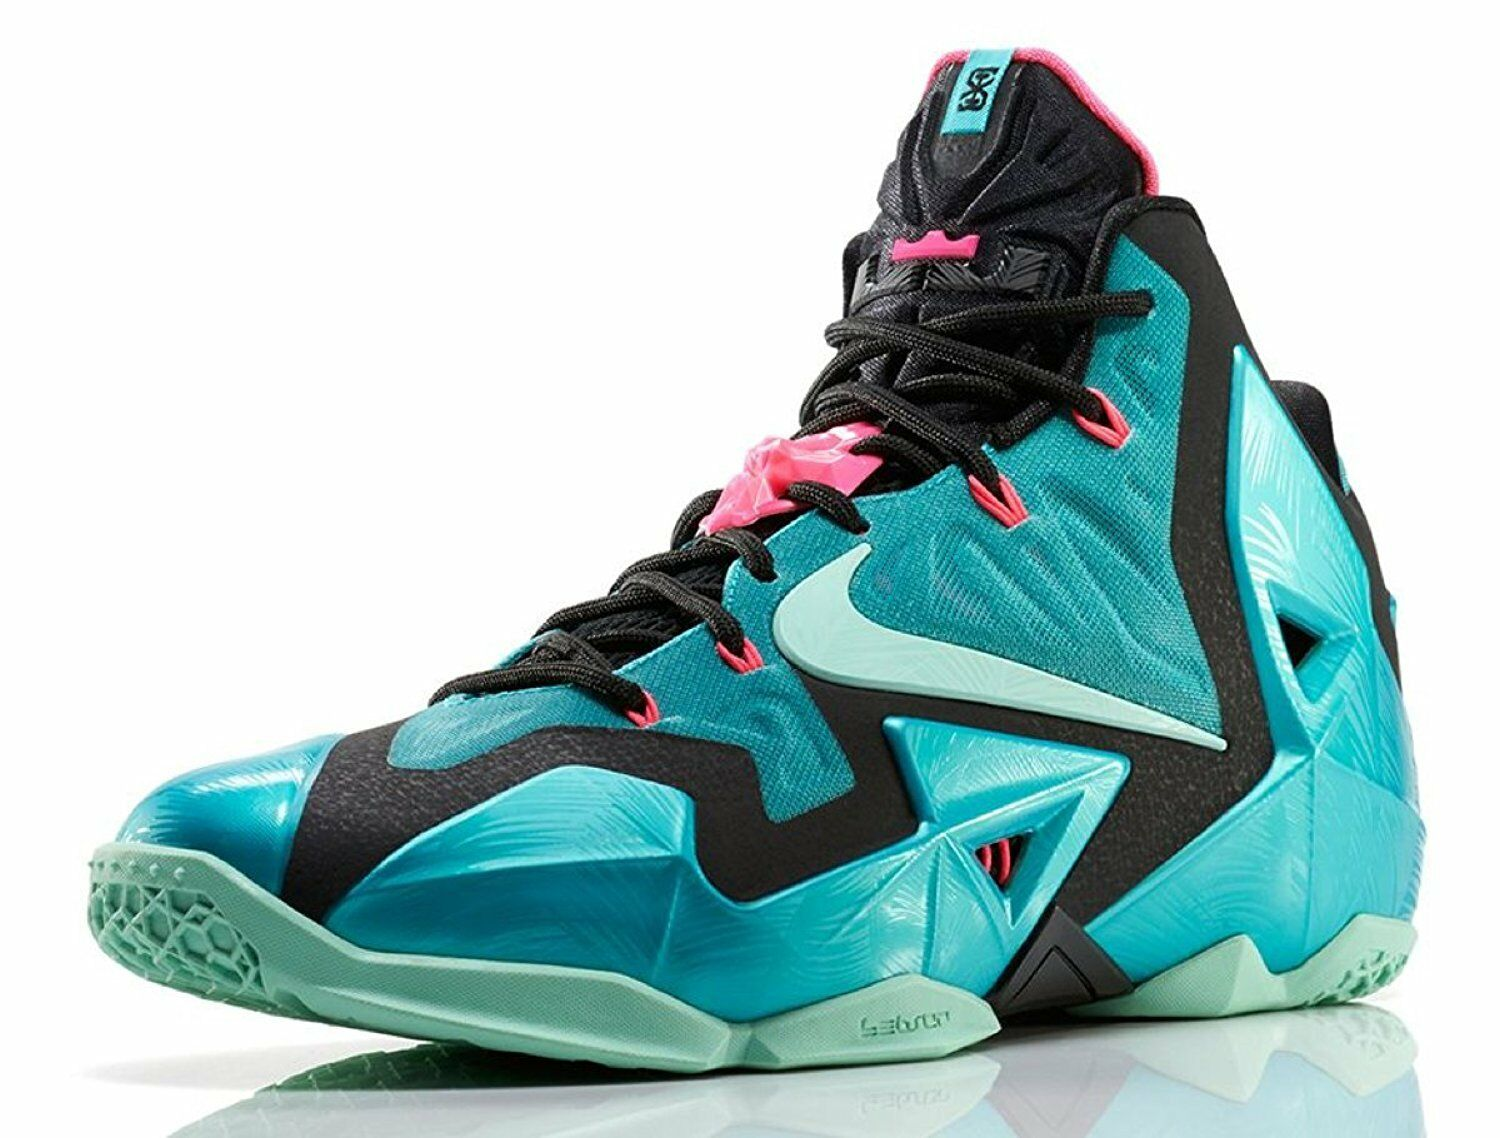 Nike LEBRON XI 11 SOUTH BEACH basketball shoe teal bluee green pink black NEW BOX